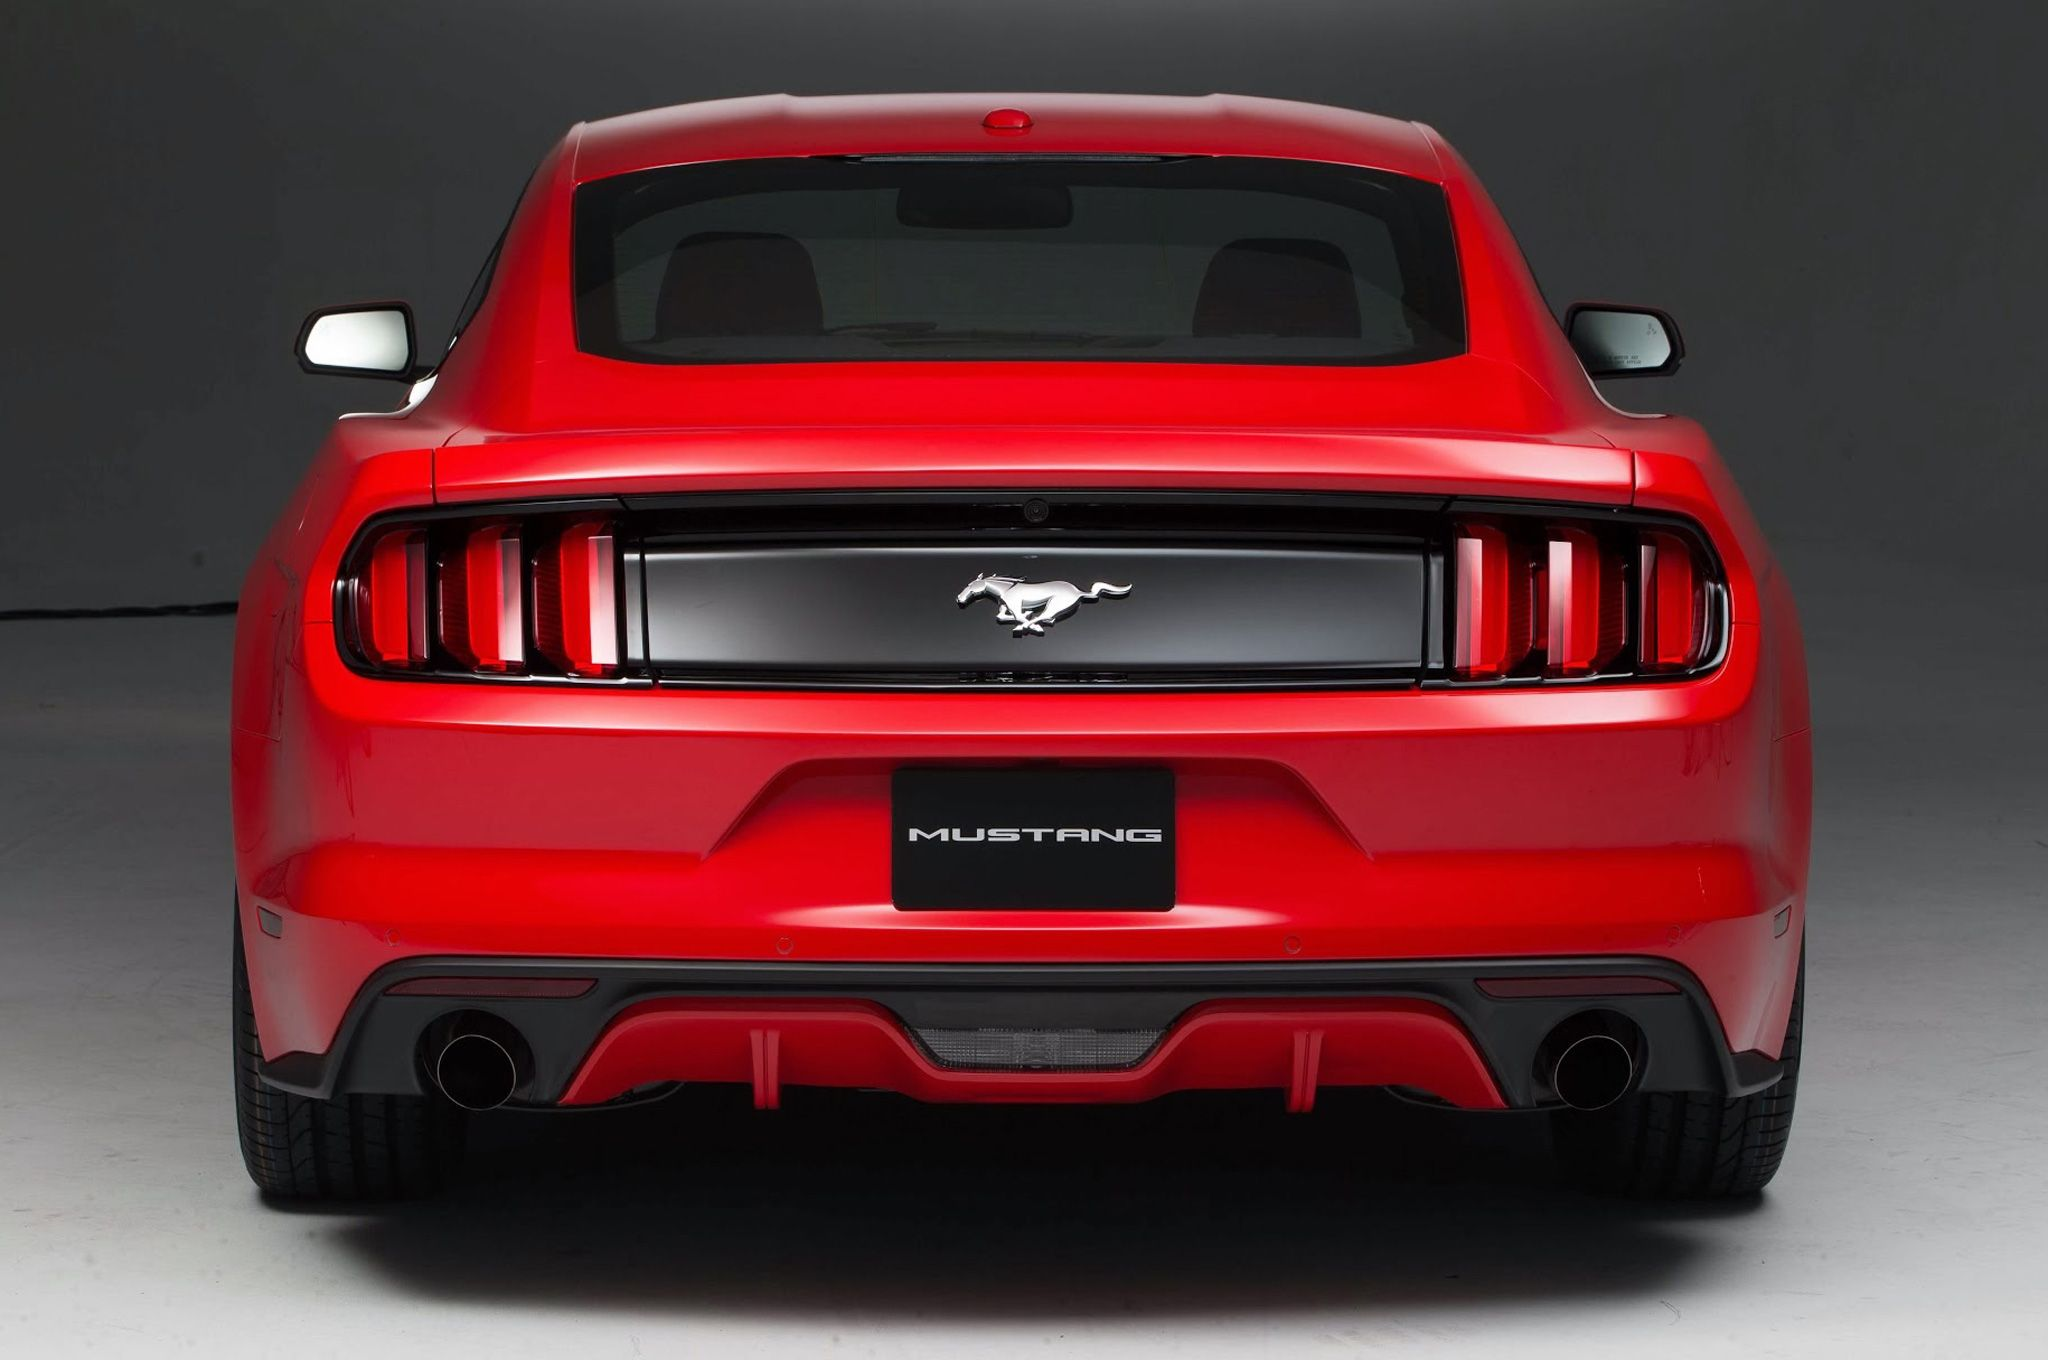 Ford mustang cars wallpapers hd wallpapers full hd wallpapers pinterest mustang cars car wallpapers and ford mustang